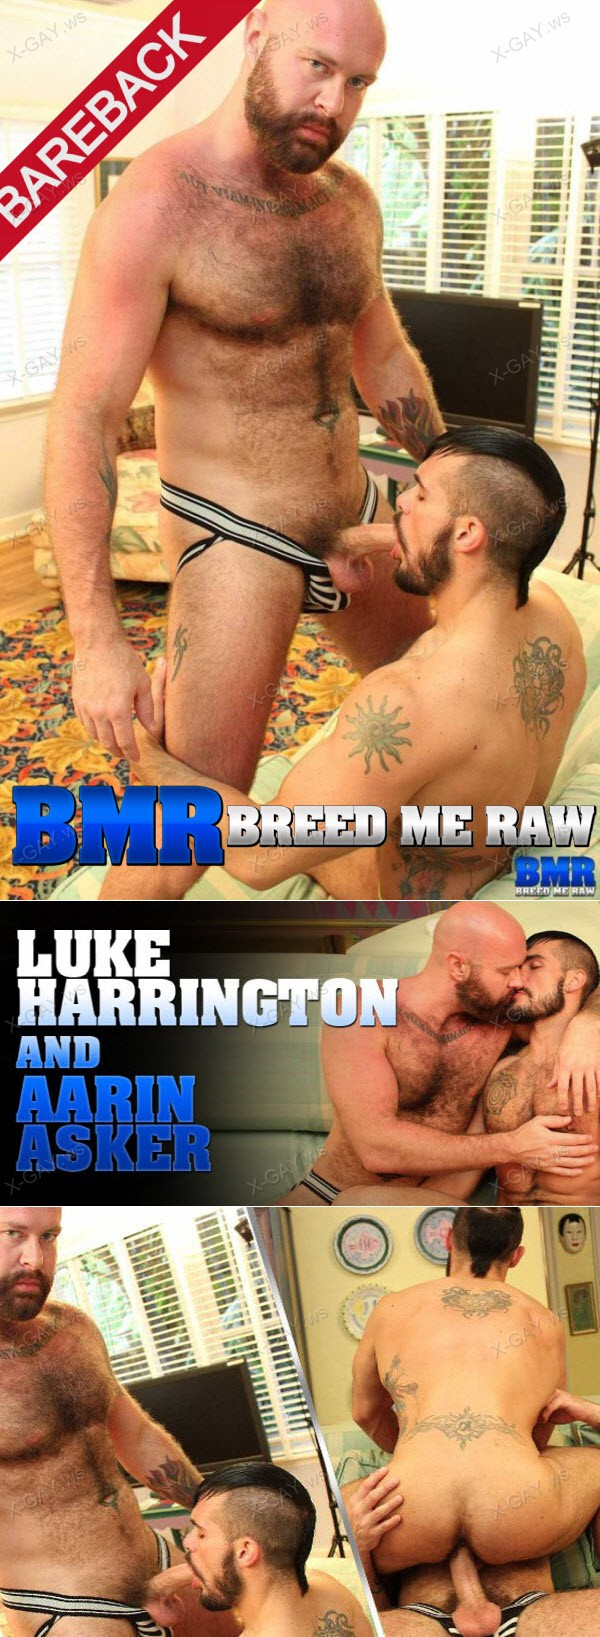 BreedMeRaw: Luke Harrington, Aarin Asker (Bareback)